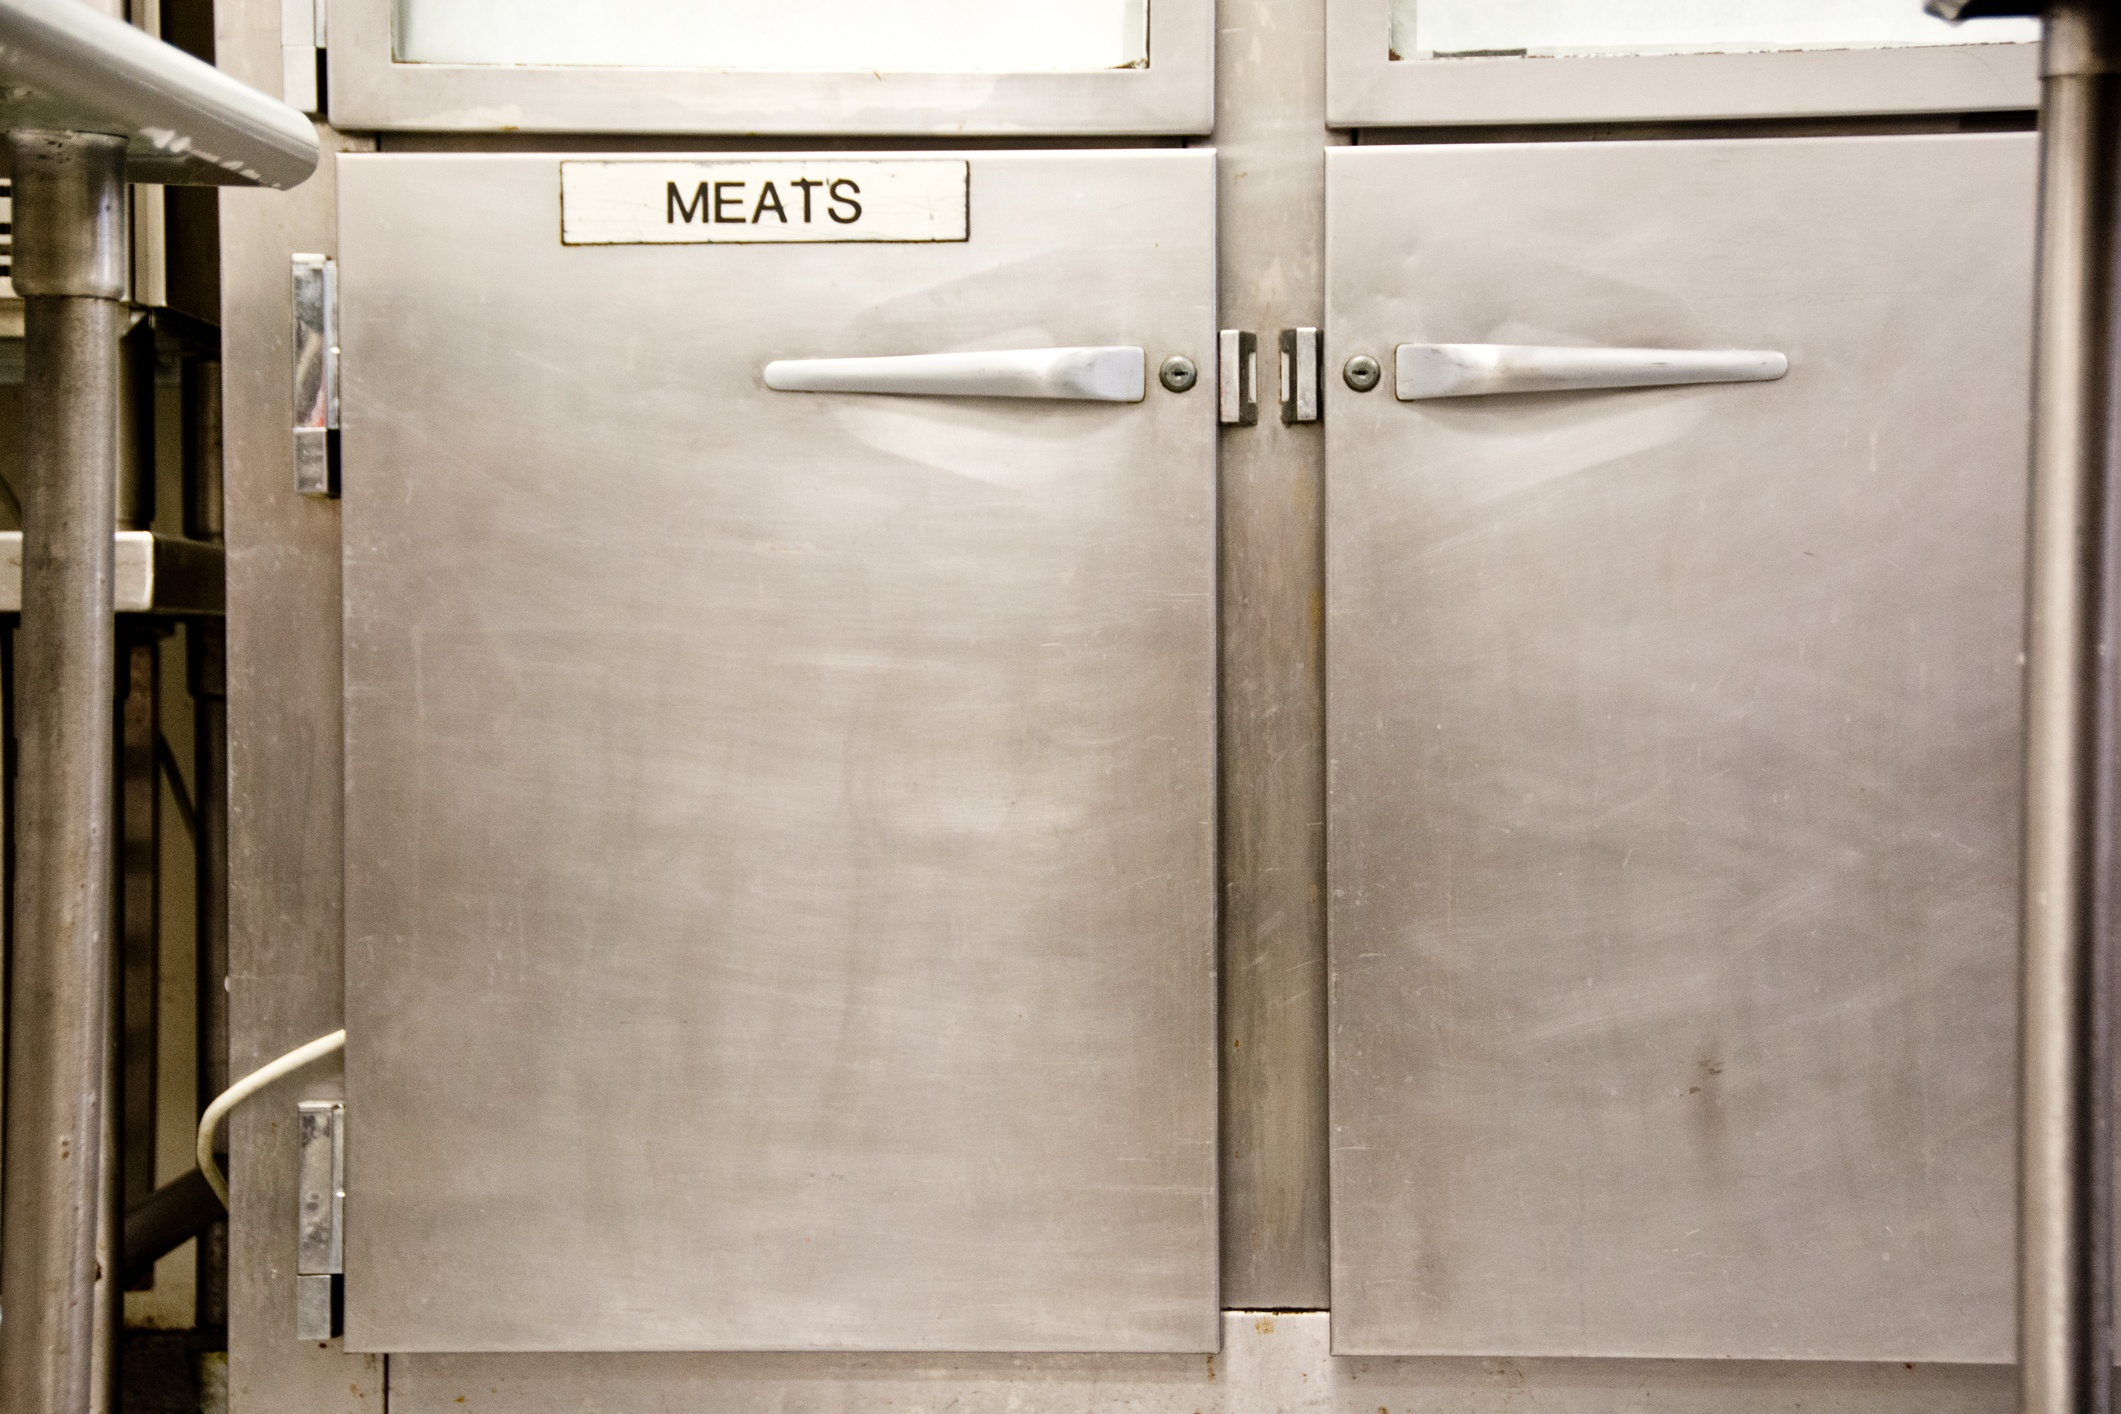 This cooler in a commerial kitchen is specially labeled for meat only.